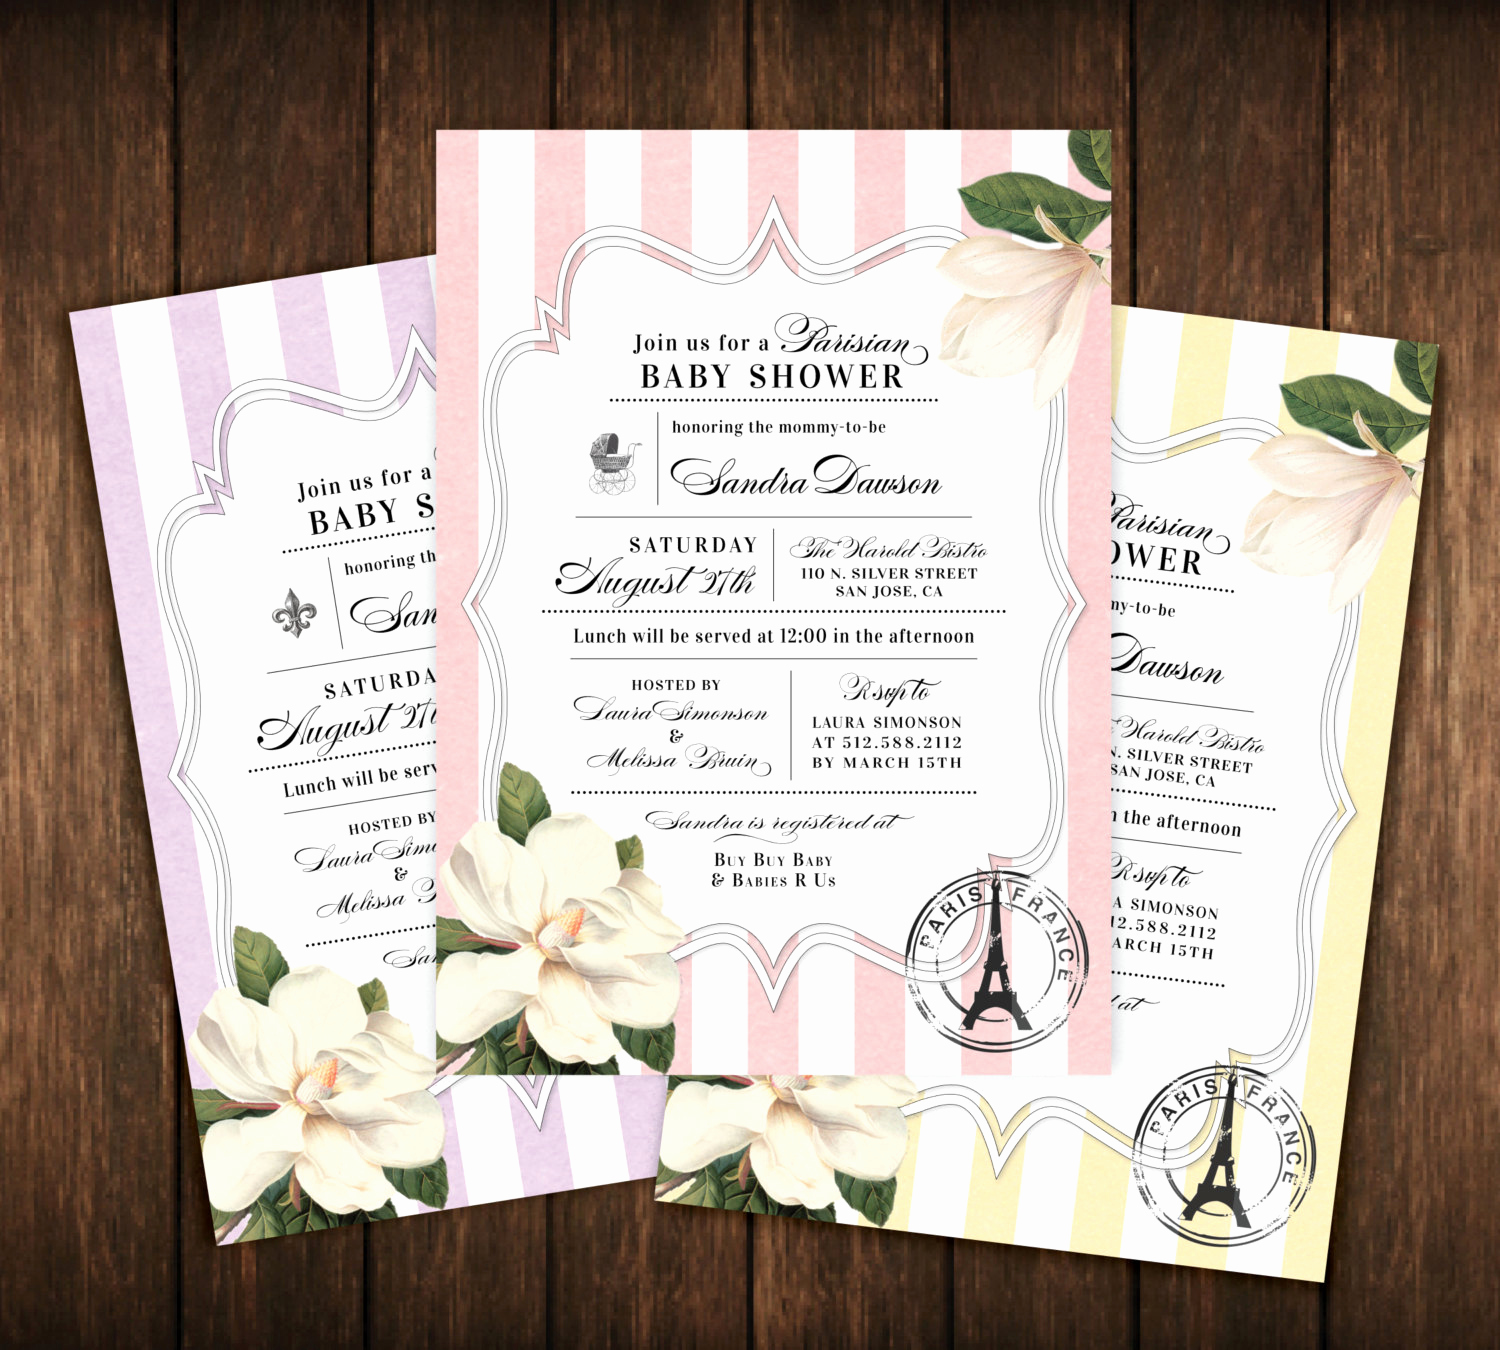 French Baby Shower Invitation Fresh Parisian French Baby Shower Invitations Paris France